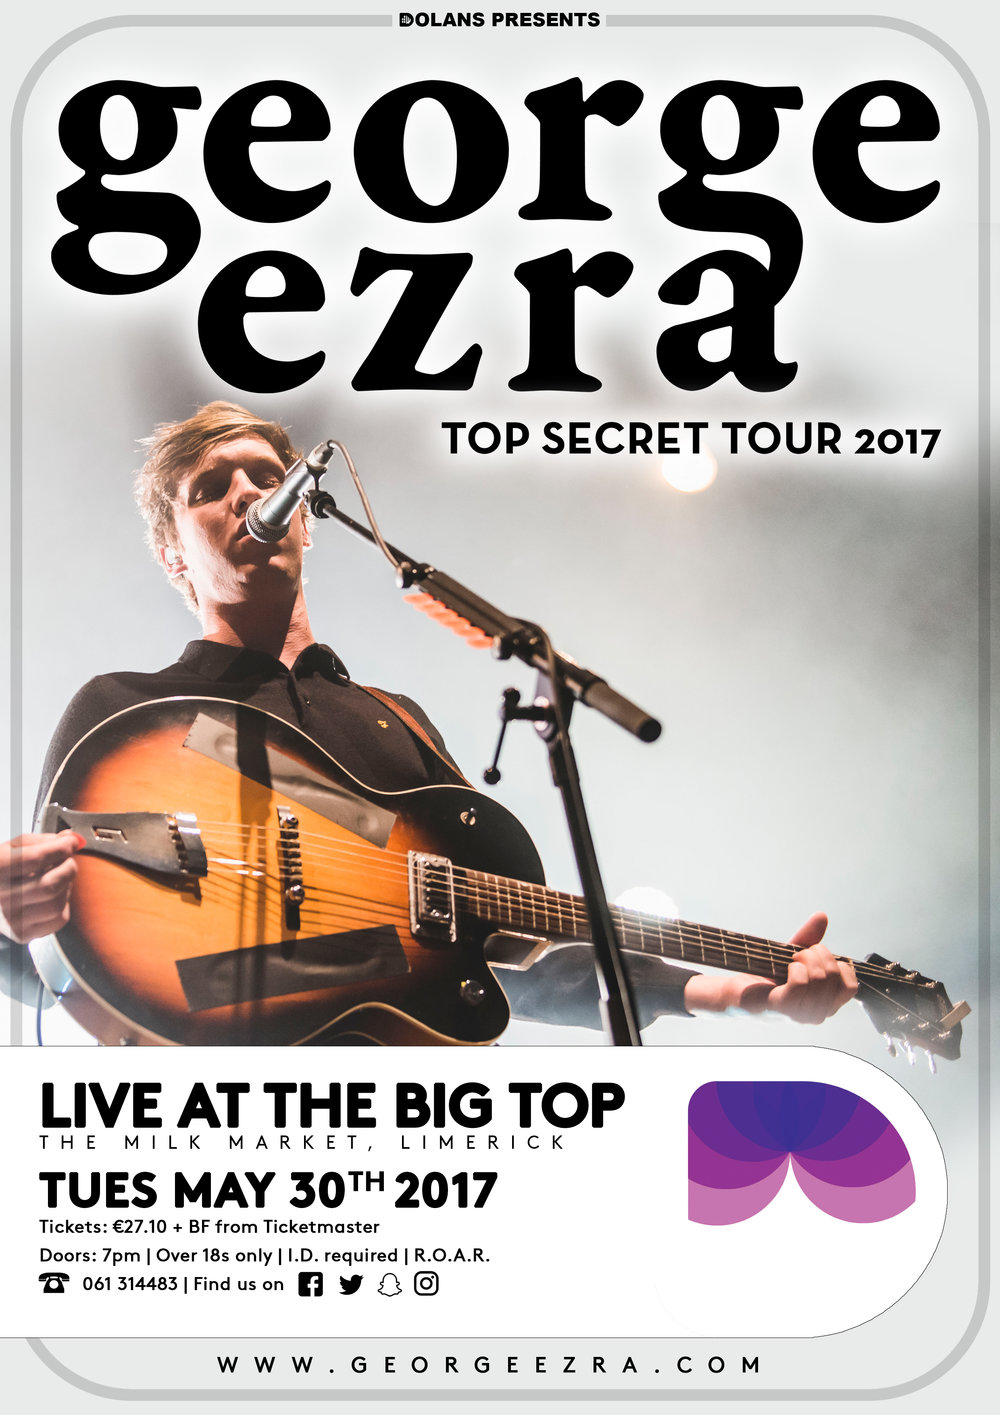 Geroge Ezra Dolans Limerick Live At The big Top